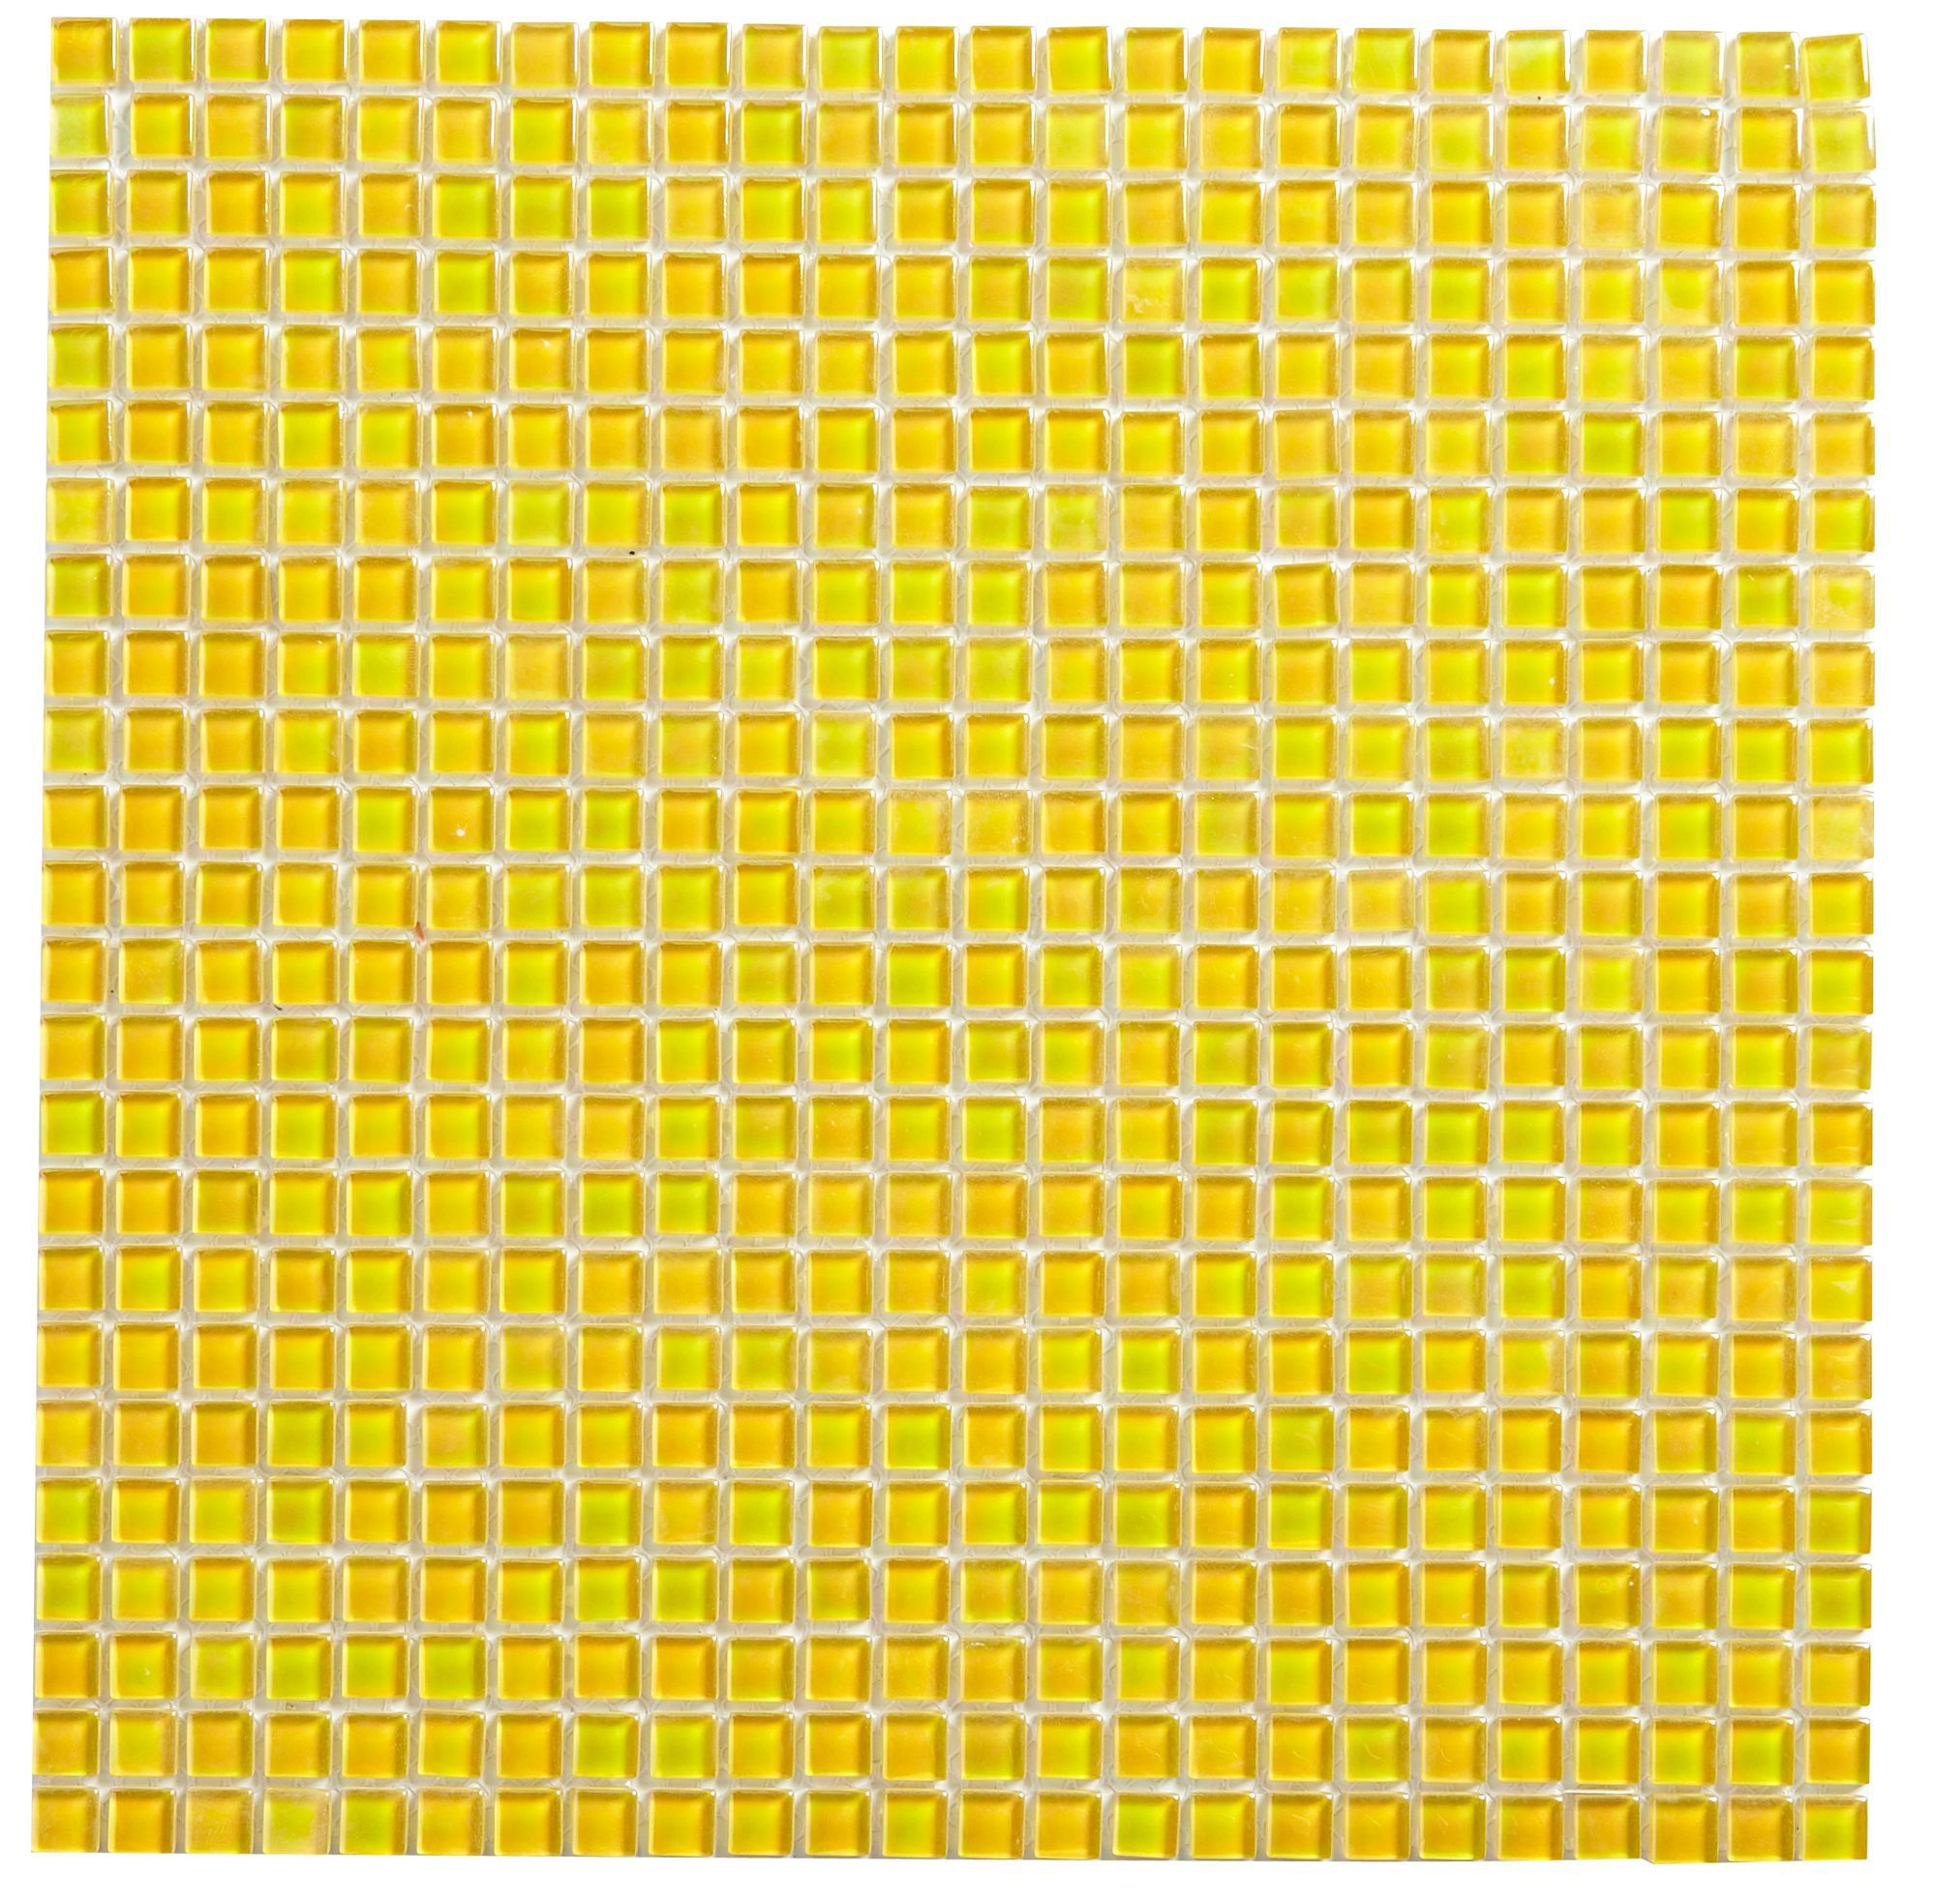 Green Glass Marble Mosaic Tile L 300mm W 300mm: Yellow Mosaic Glass Mosaic Tile, (L)300mm (W)300mm